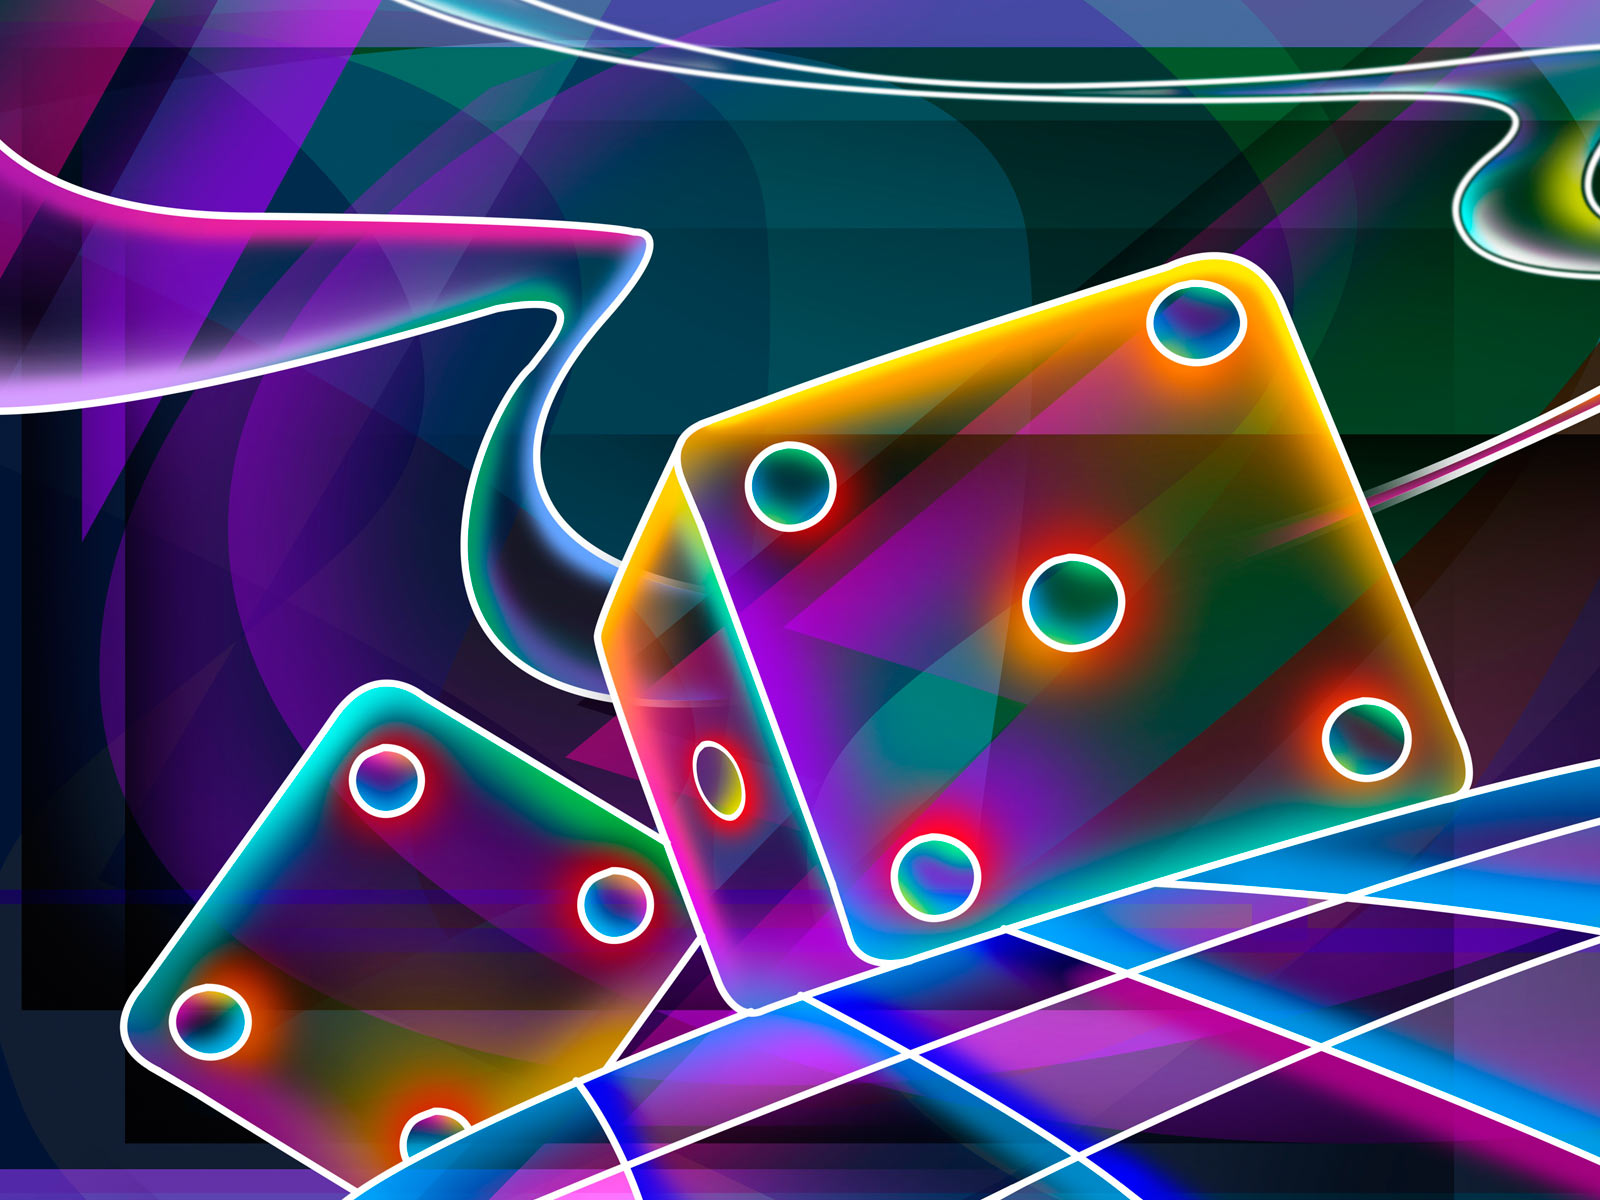 3D Wallpapers HD   A1 Wallpapers